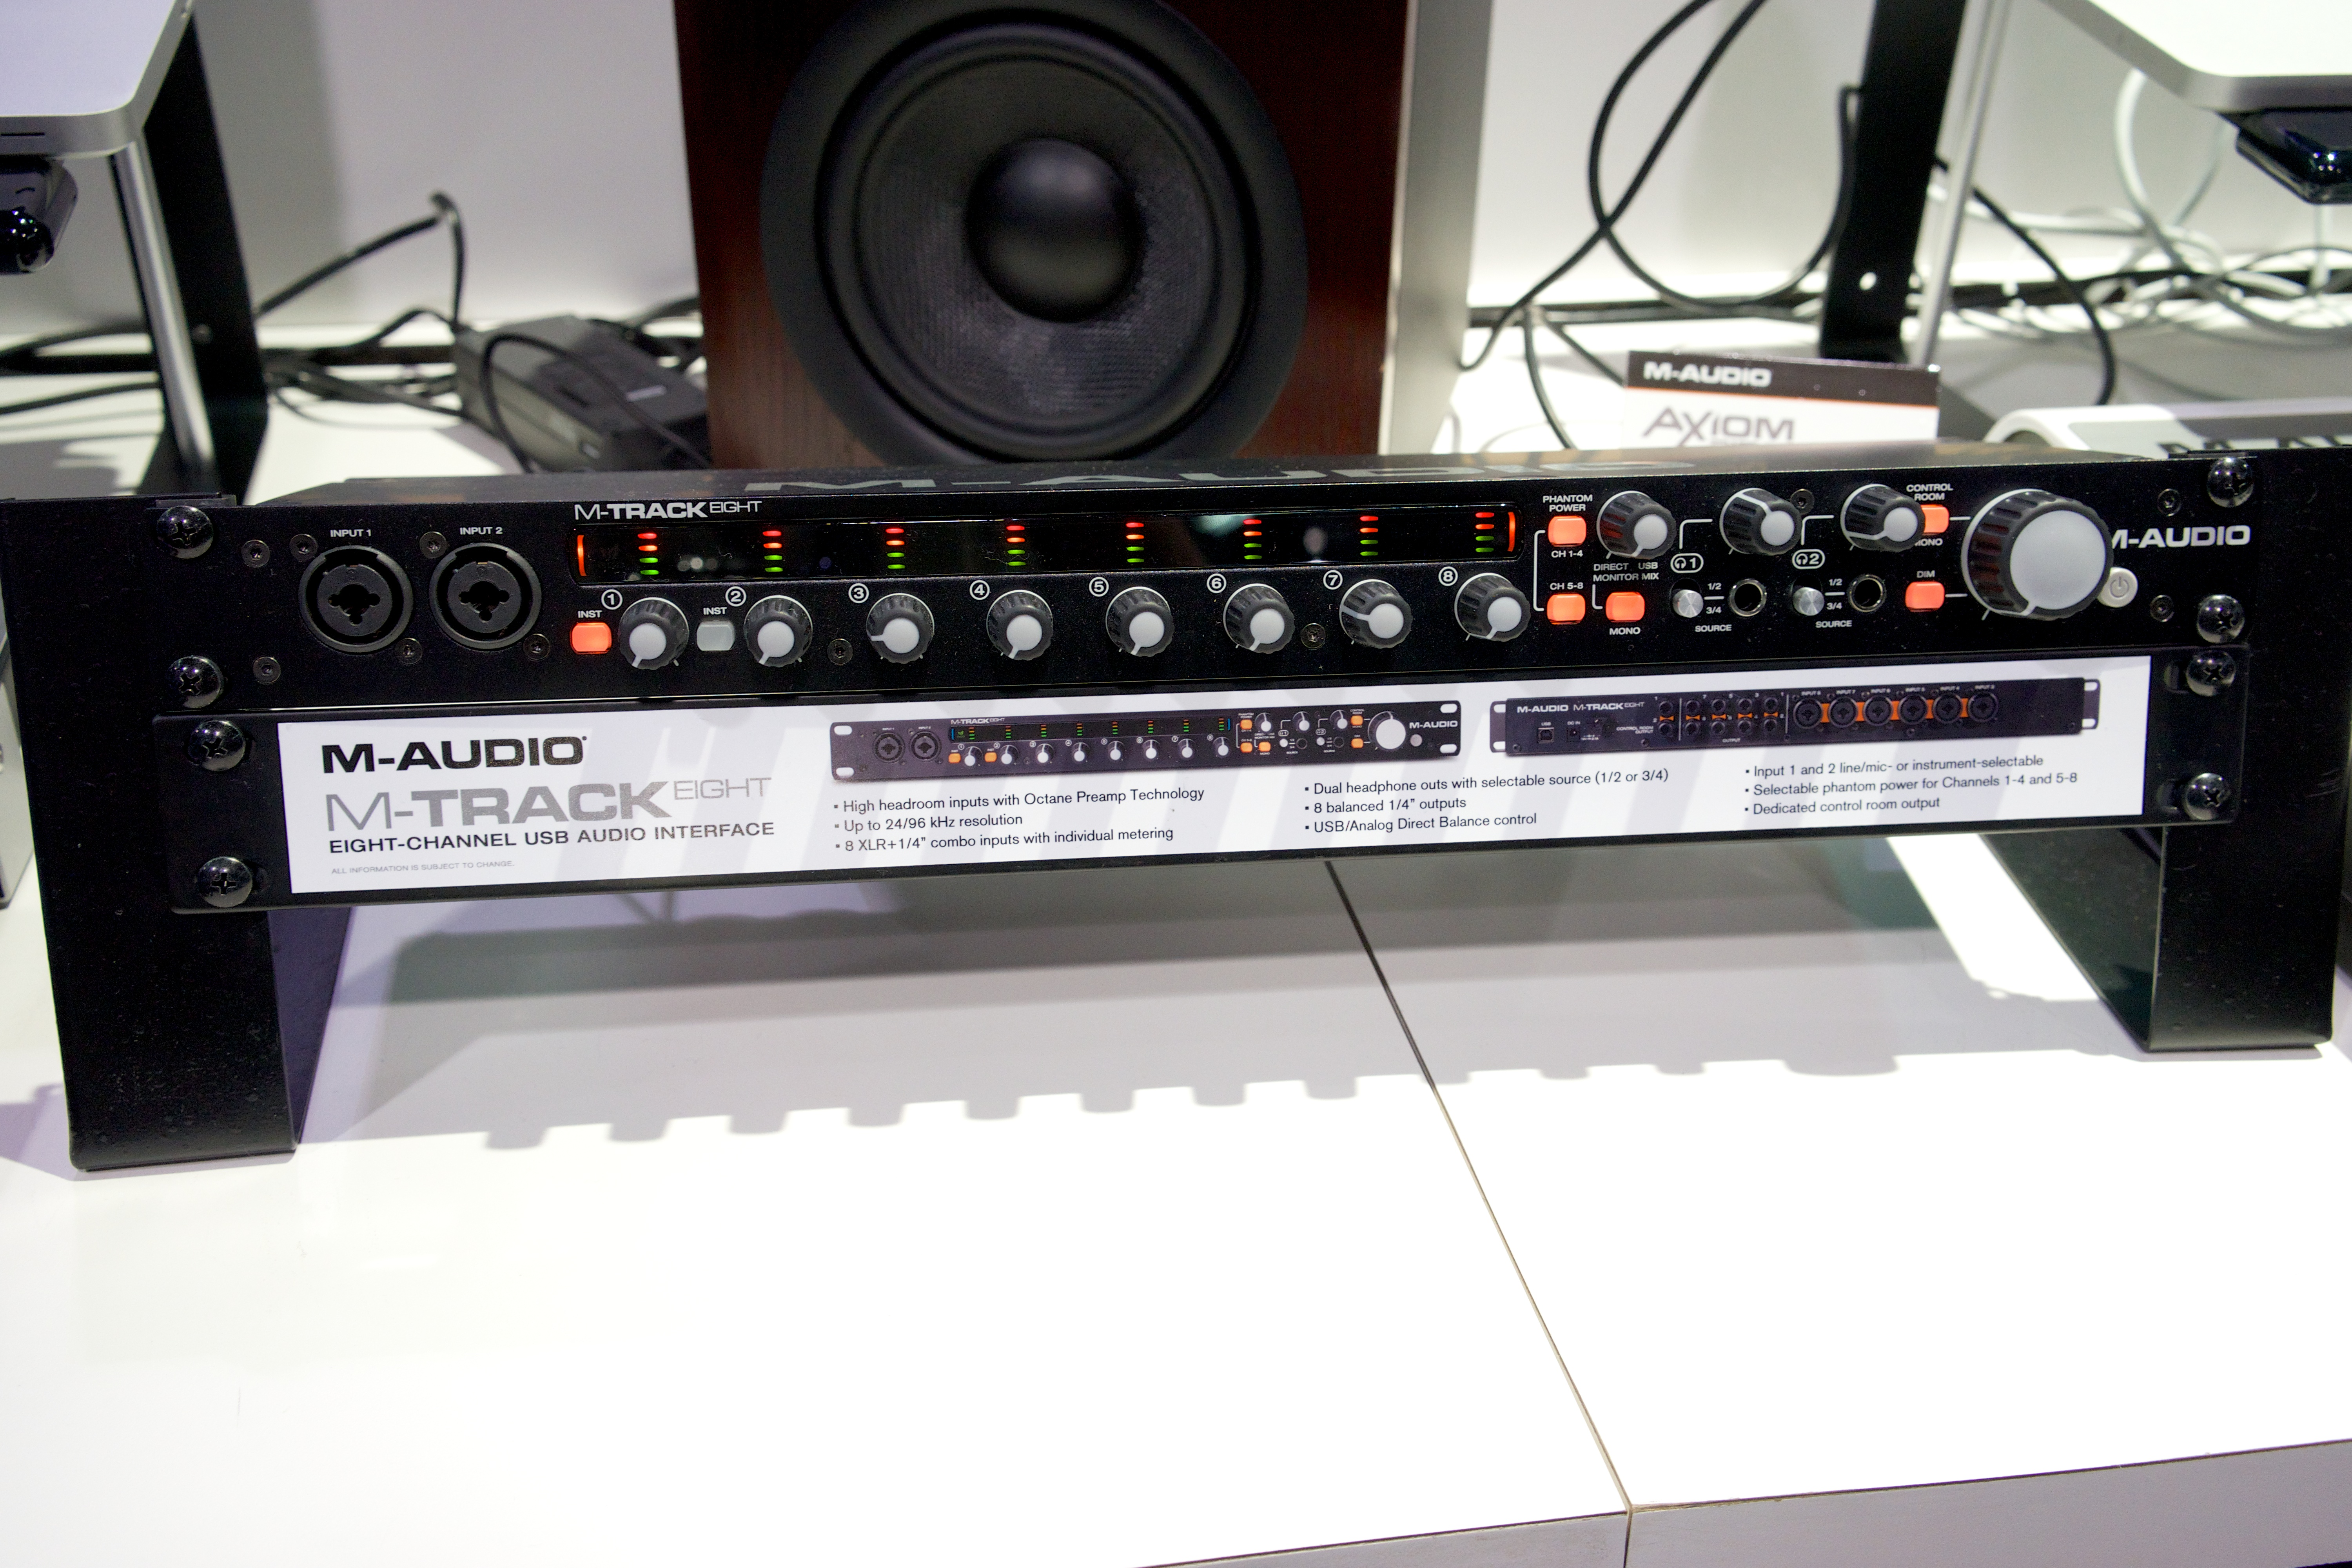 file m audio m track eight 8 channel usb audio interface 2014 namm show by matt vanacoro jpg. Black Bedroom Furniture Sets. Home Design Ideas